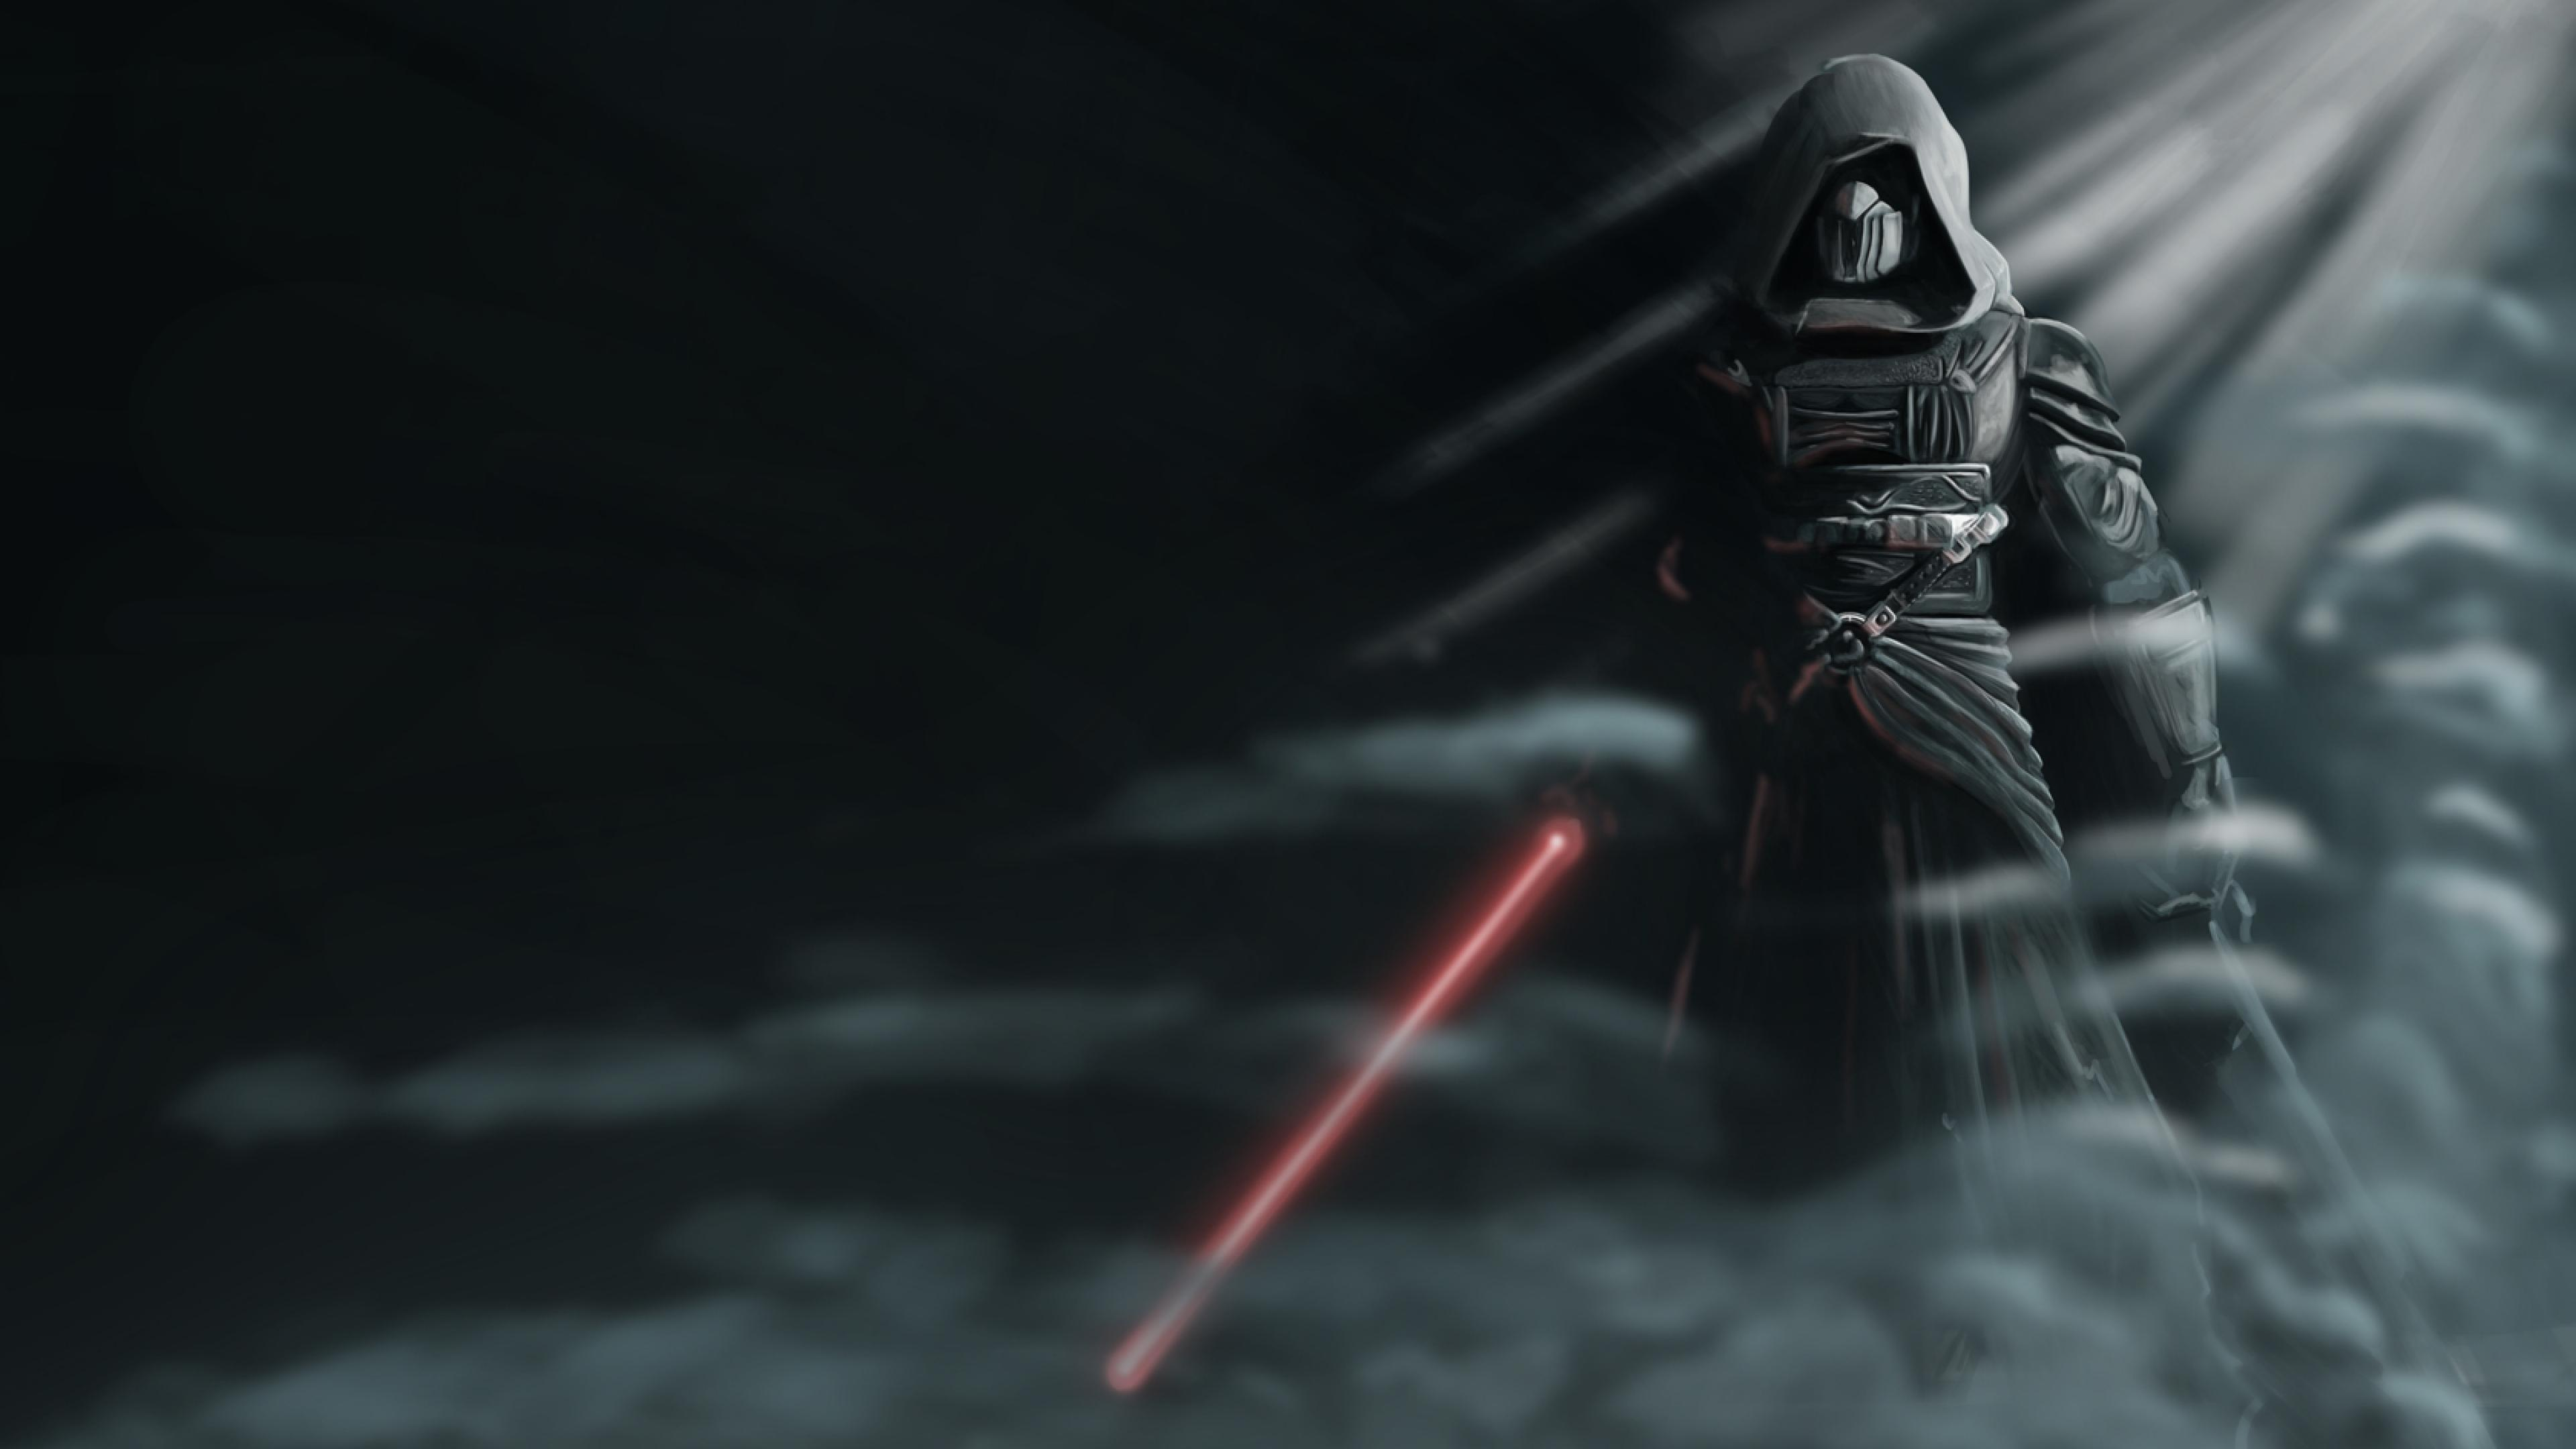 Free Star Wars Sith Backgrounds at Movies Monodomo